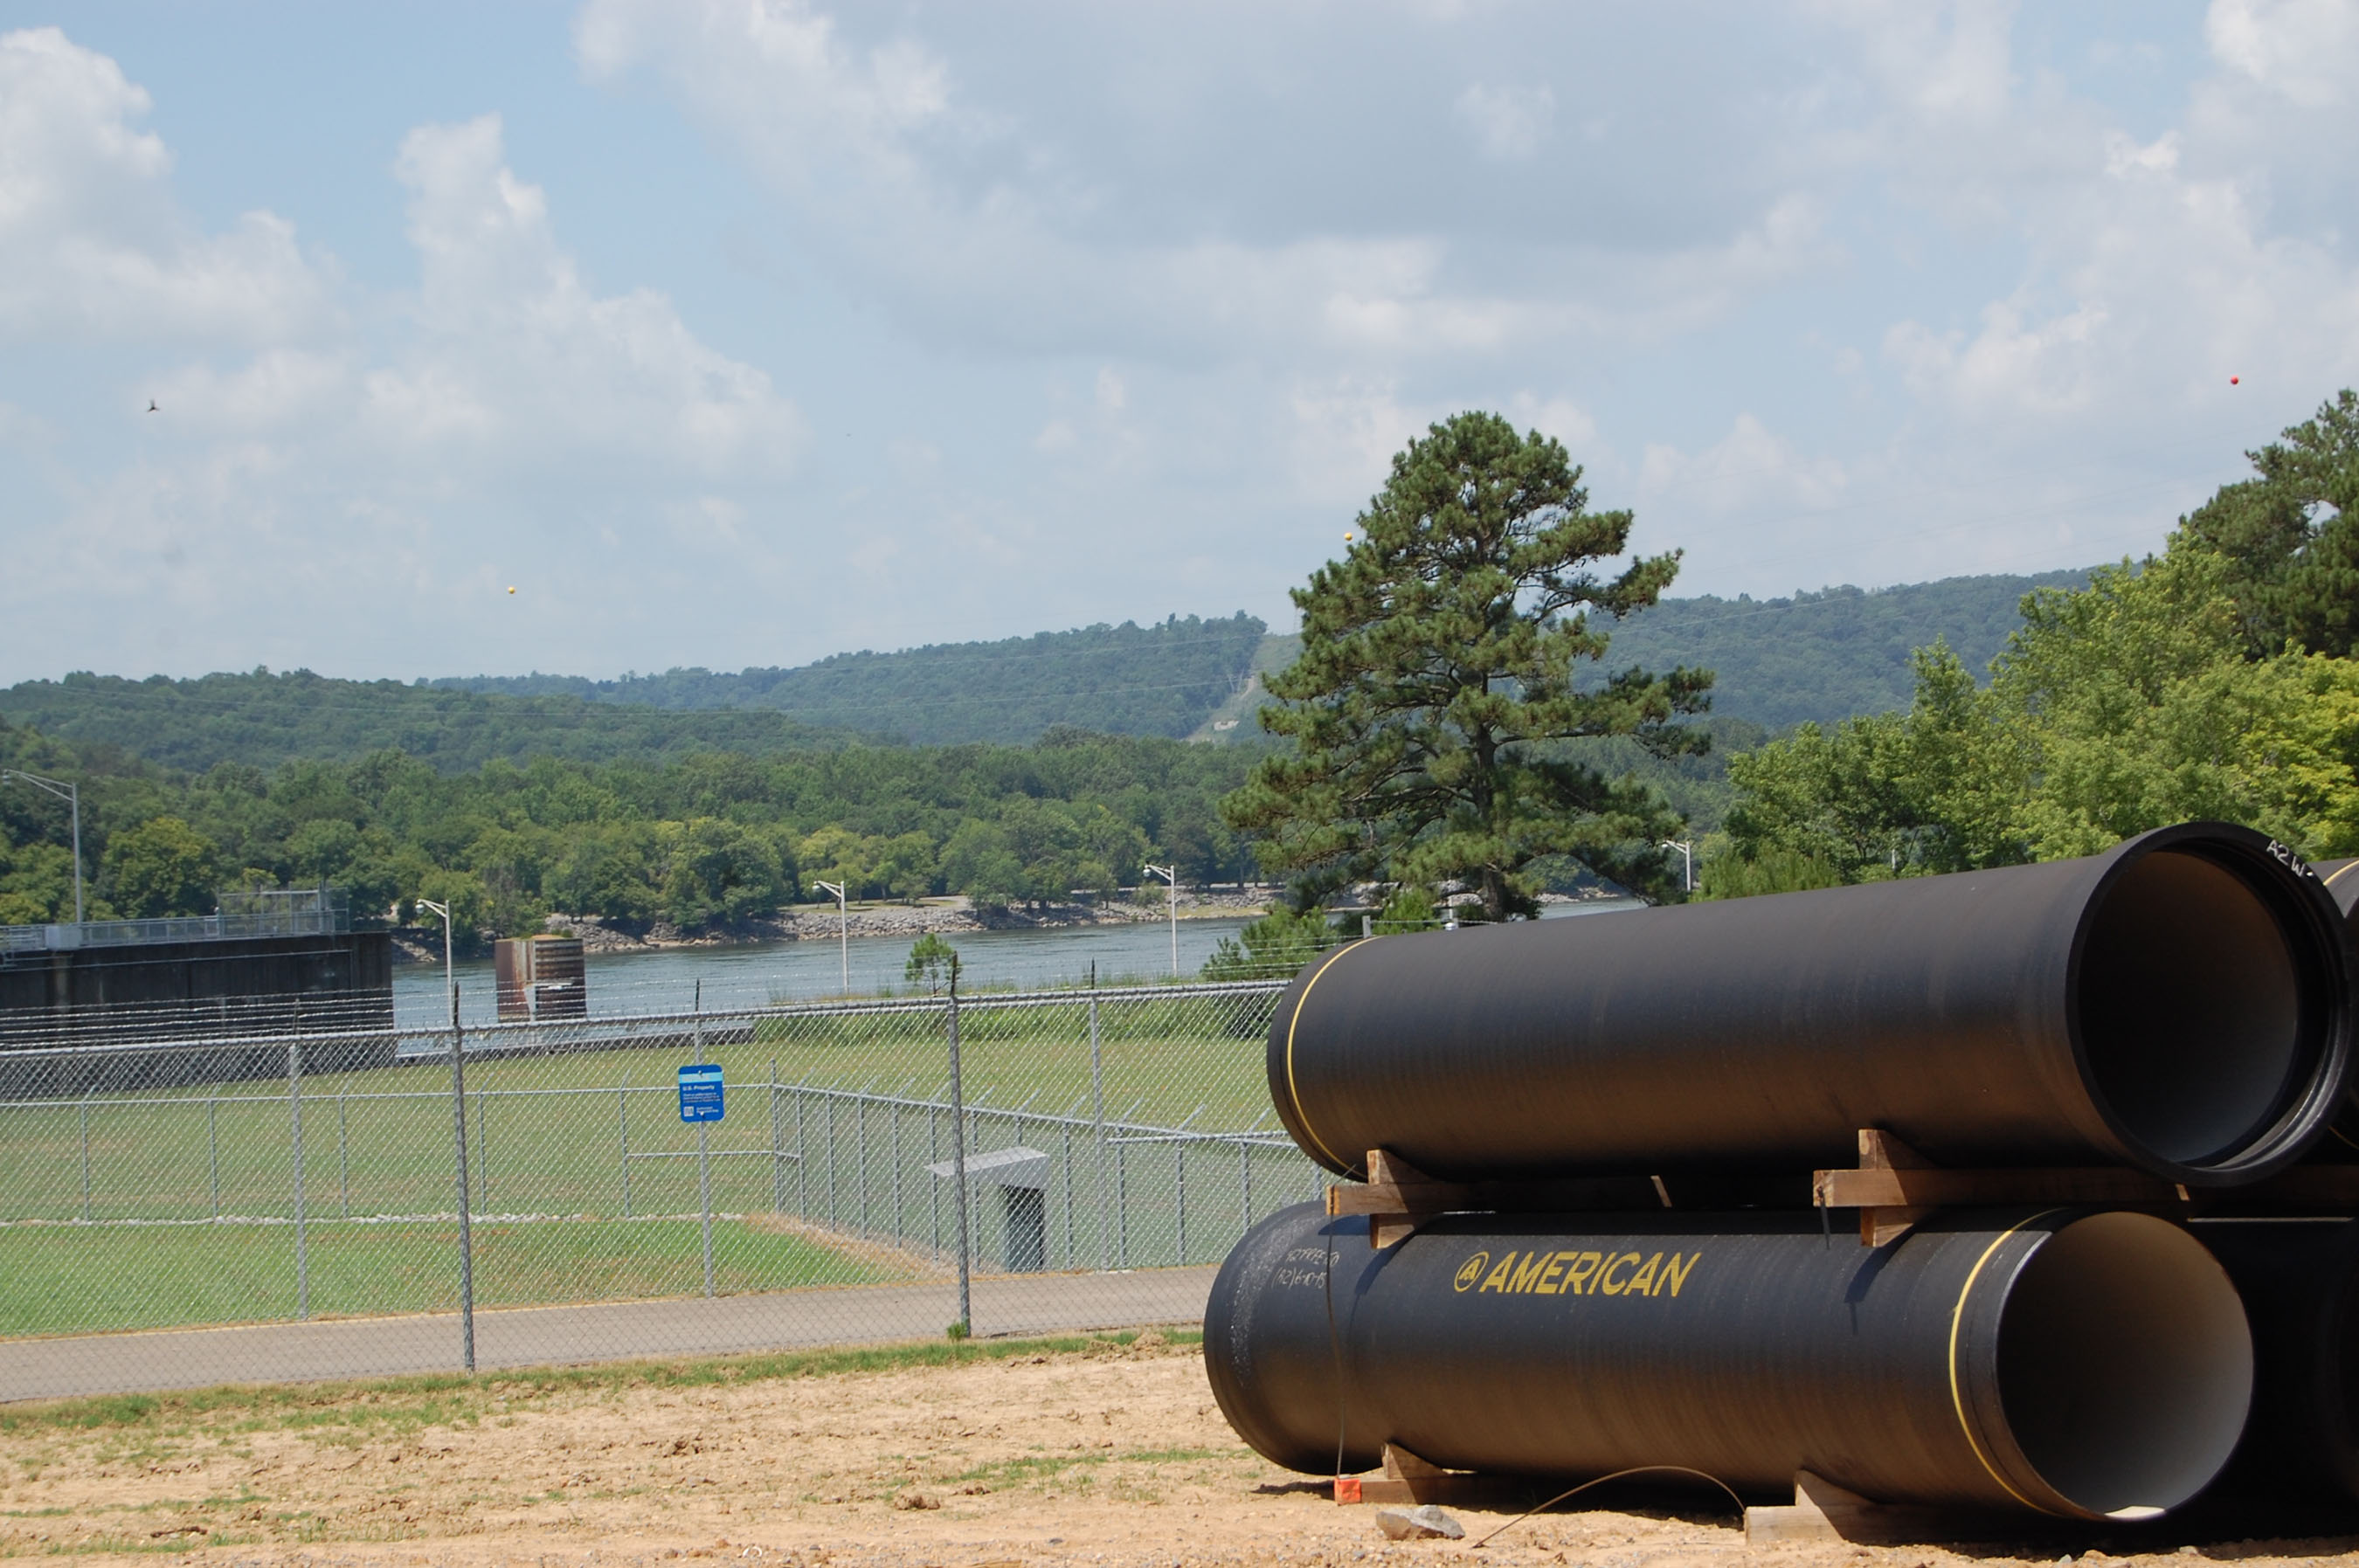 AMERICAN Ductile Iron Pipe waiting to be installed along Lake Guntersville.